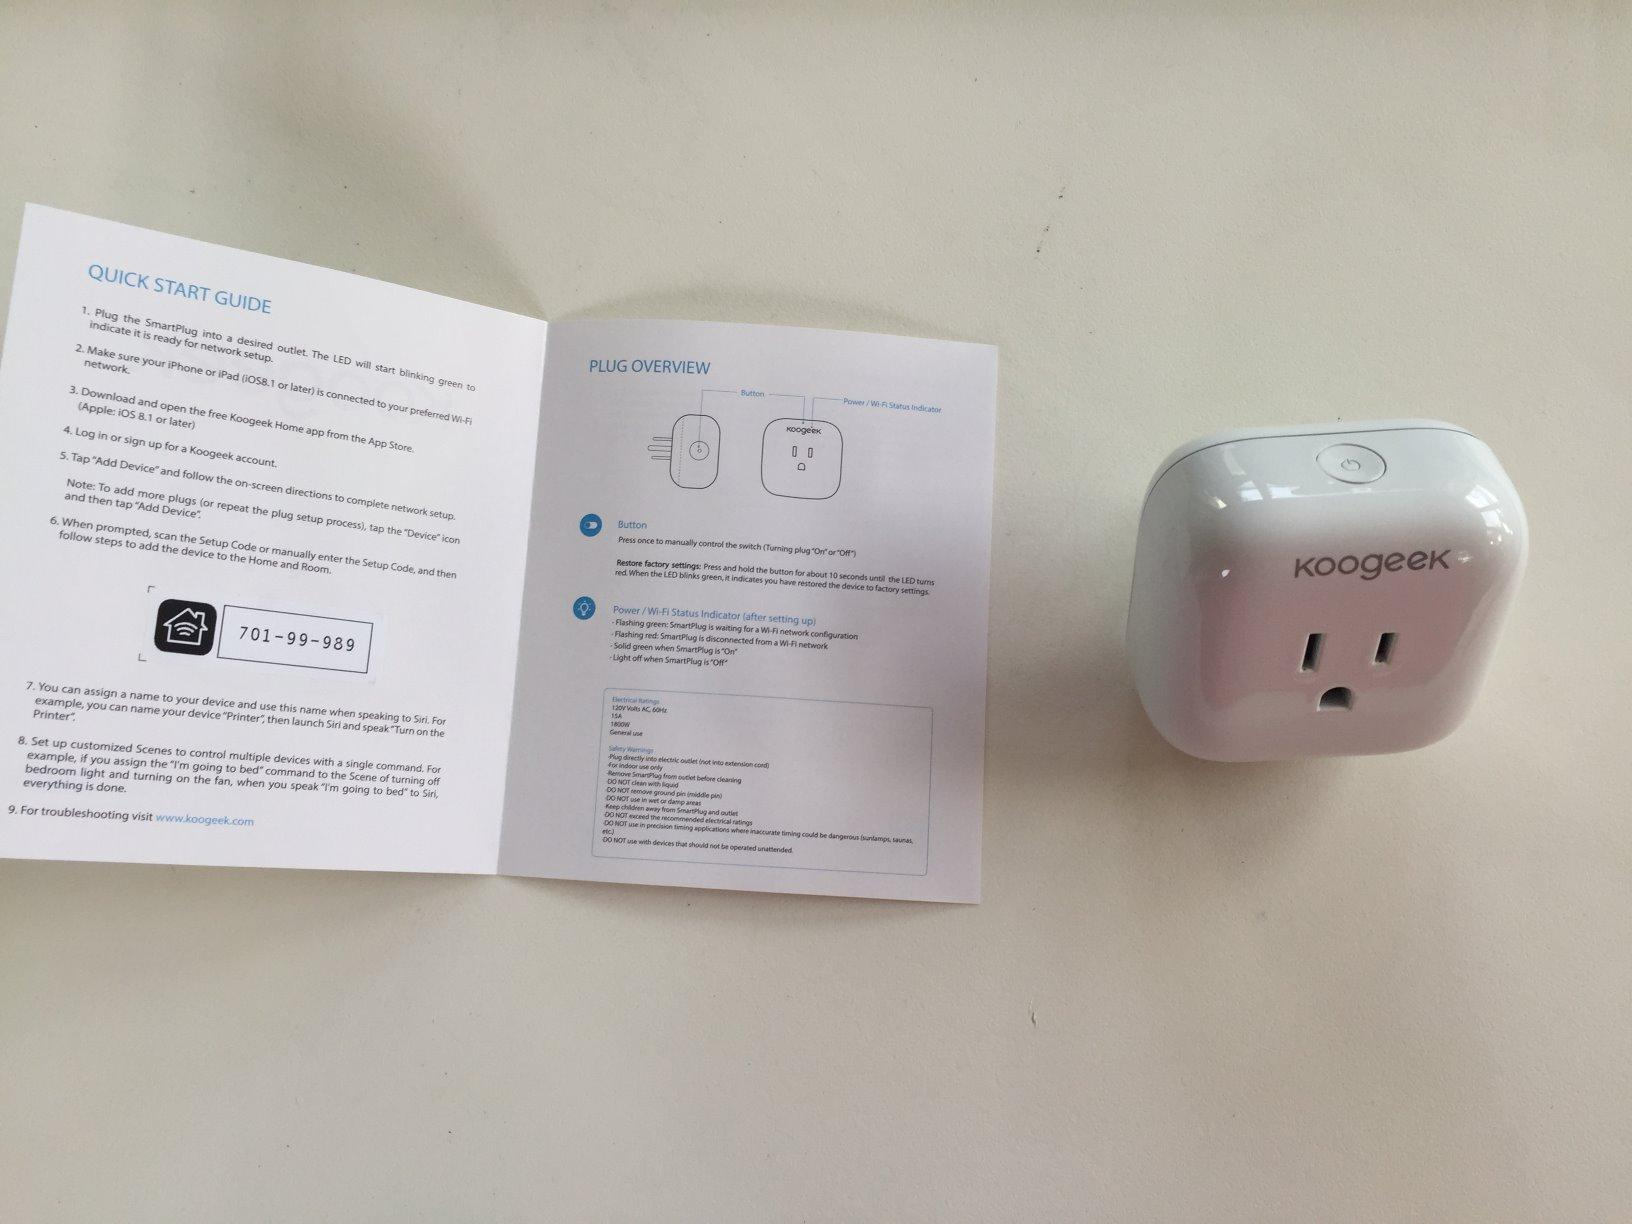 Koogeek Wi Fi Enabled Improved Smart Plug Works With Apple Homekit To Legally In Canada Add 240v Power Outlet From Stove Our Case We Used The Macbook Pro Charging Cord Turn On And Off It Great Be Able Control A Switch Bed Or Lazy Chair